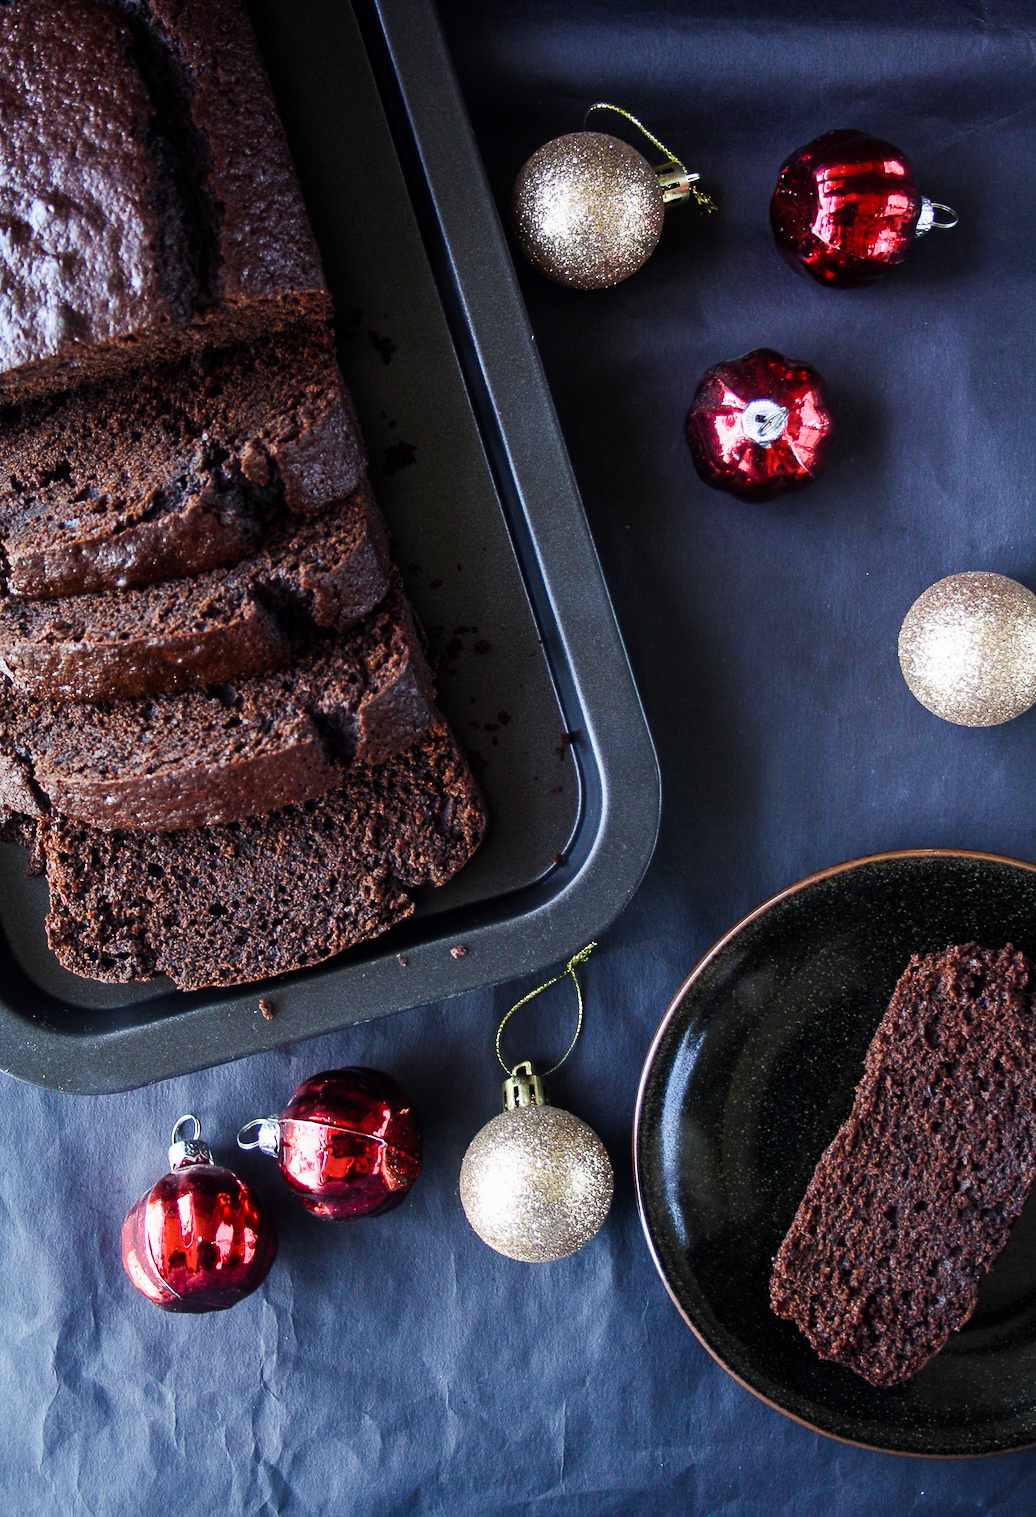 Moist chocolate cake with ginger, cinnamon and cloves